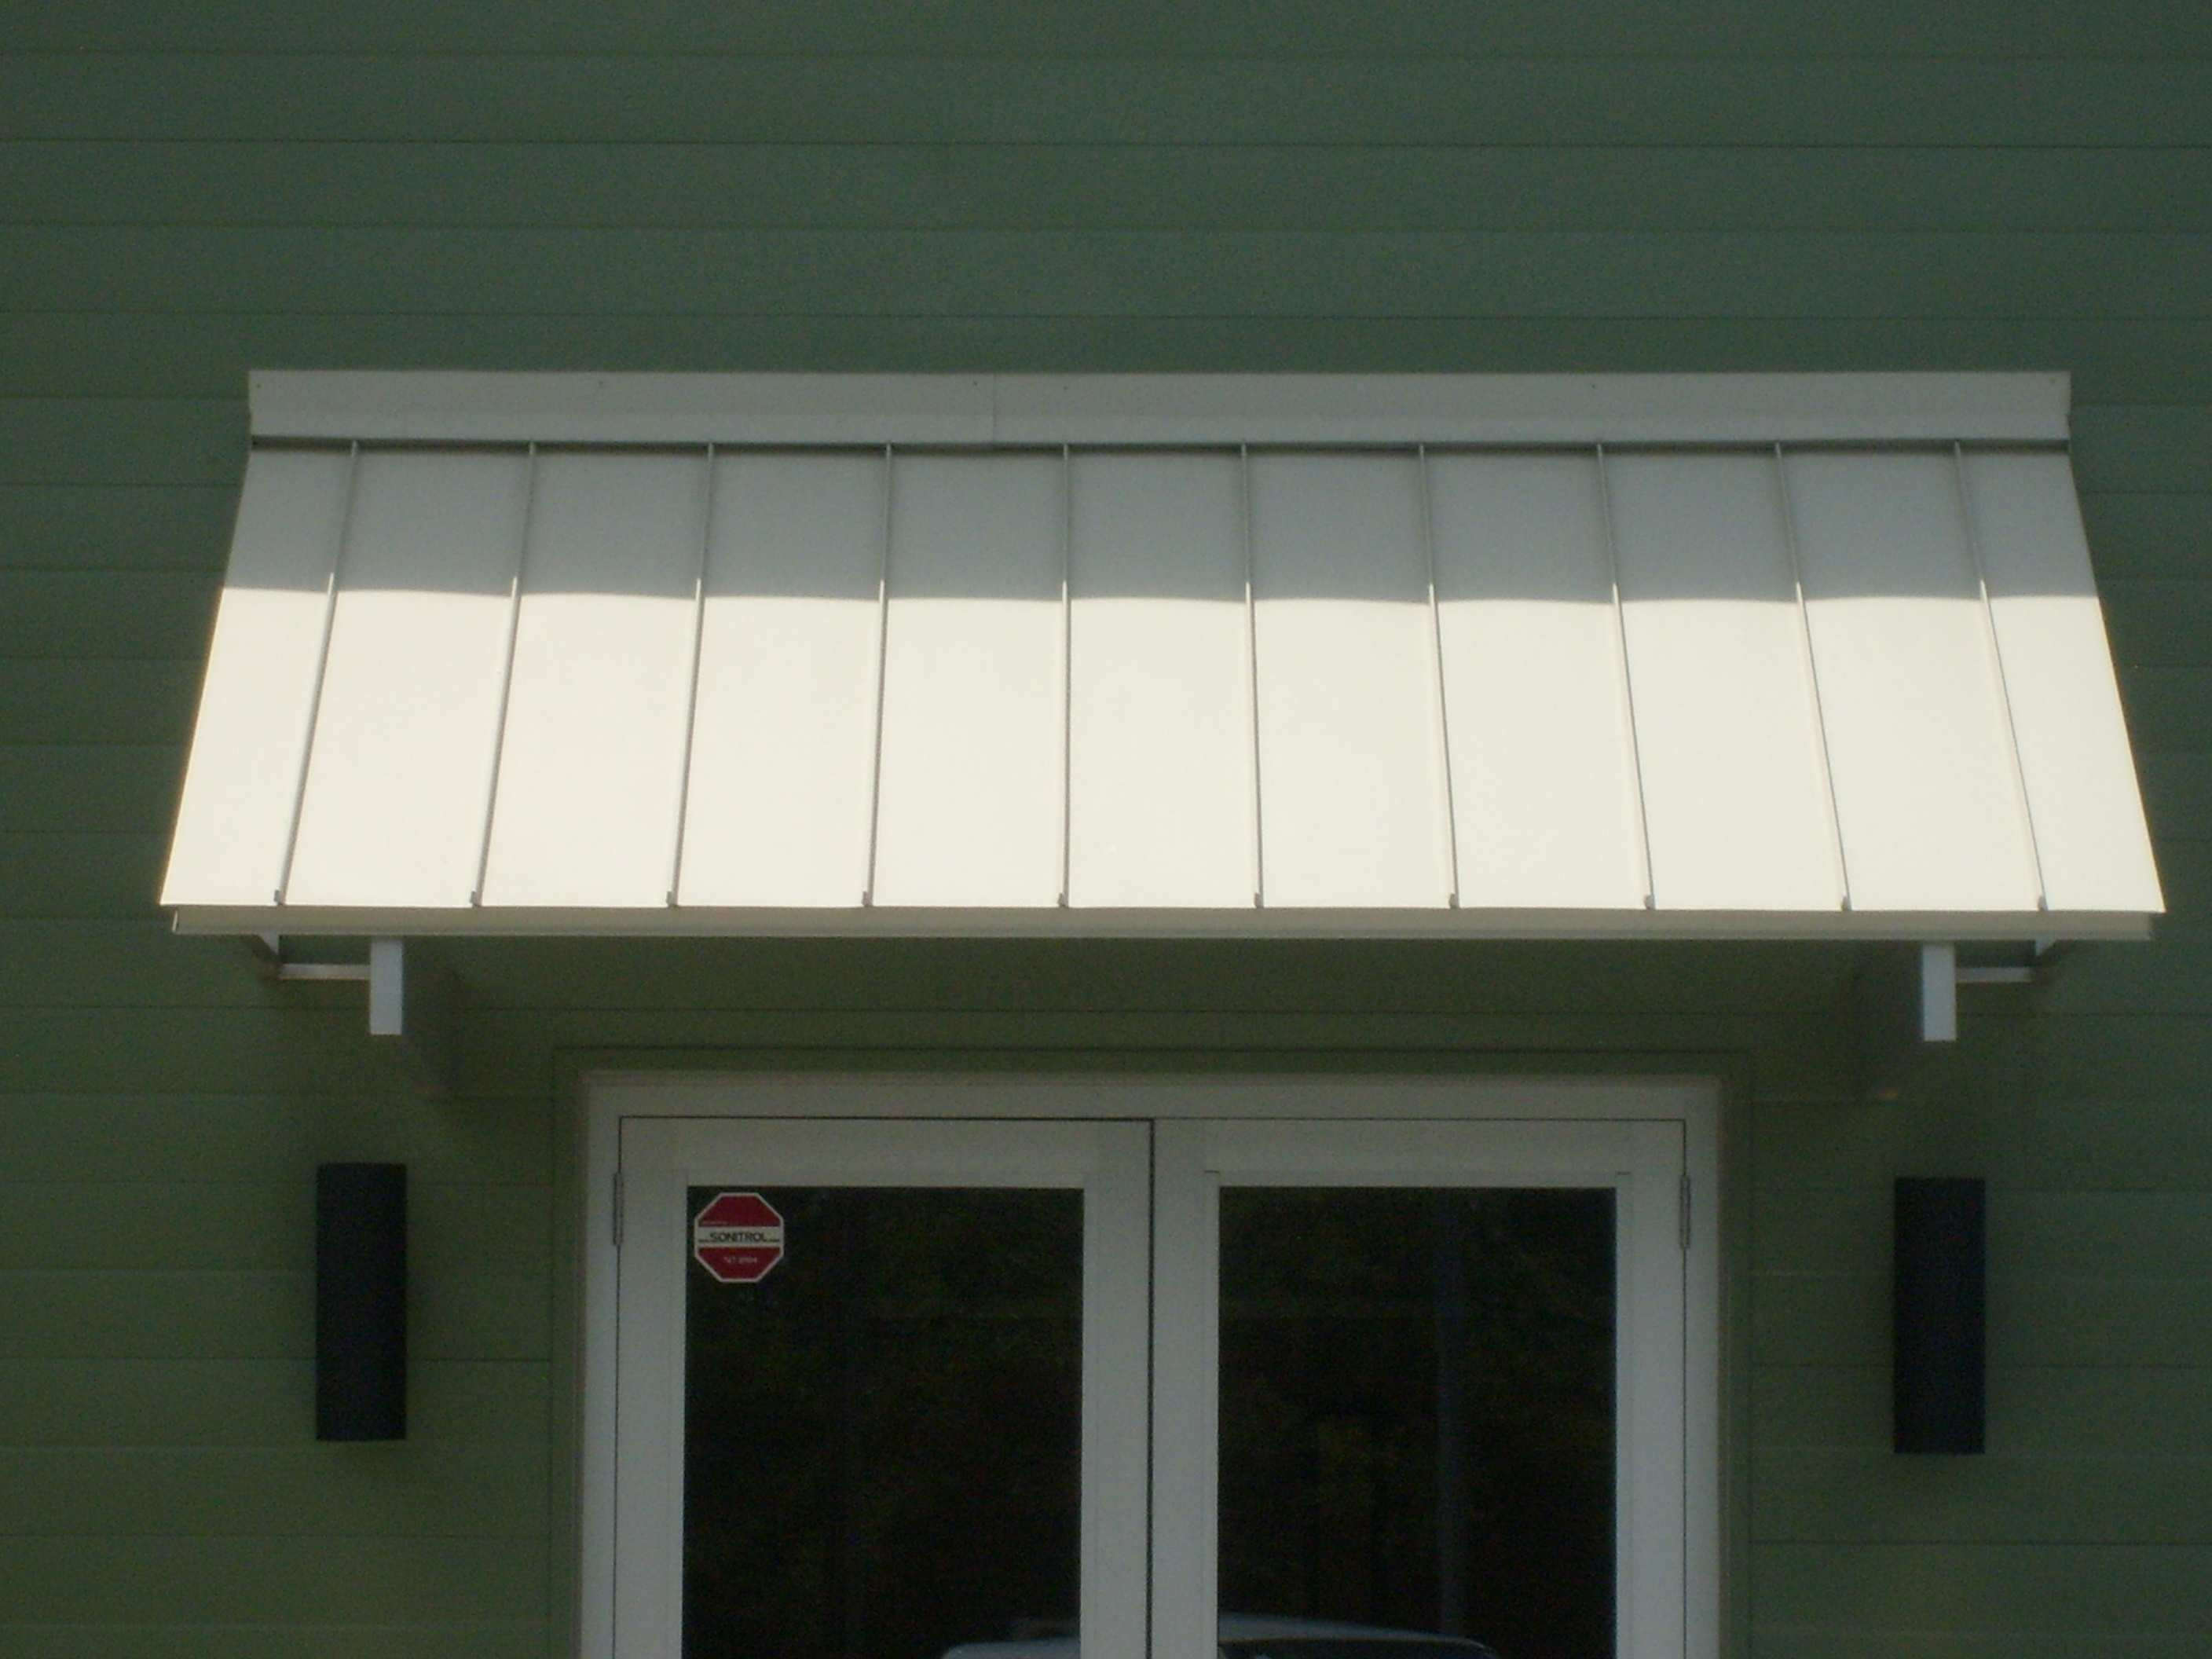 Awnings Abc Awning Amp Venetian Blind Corp